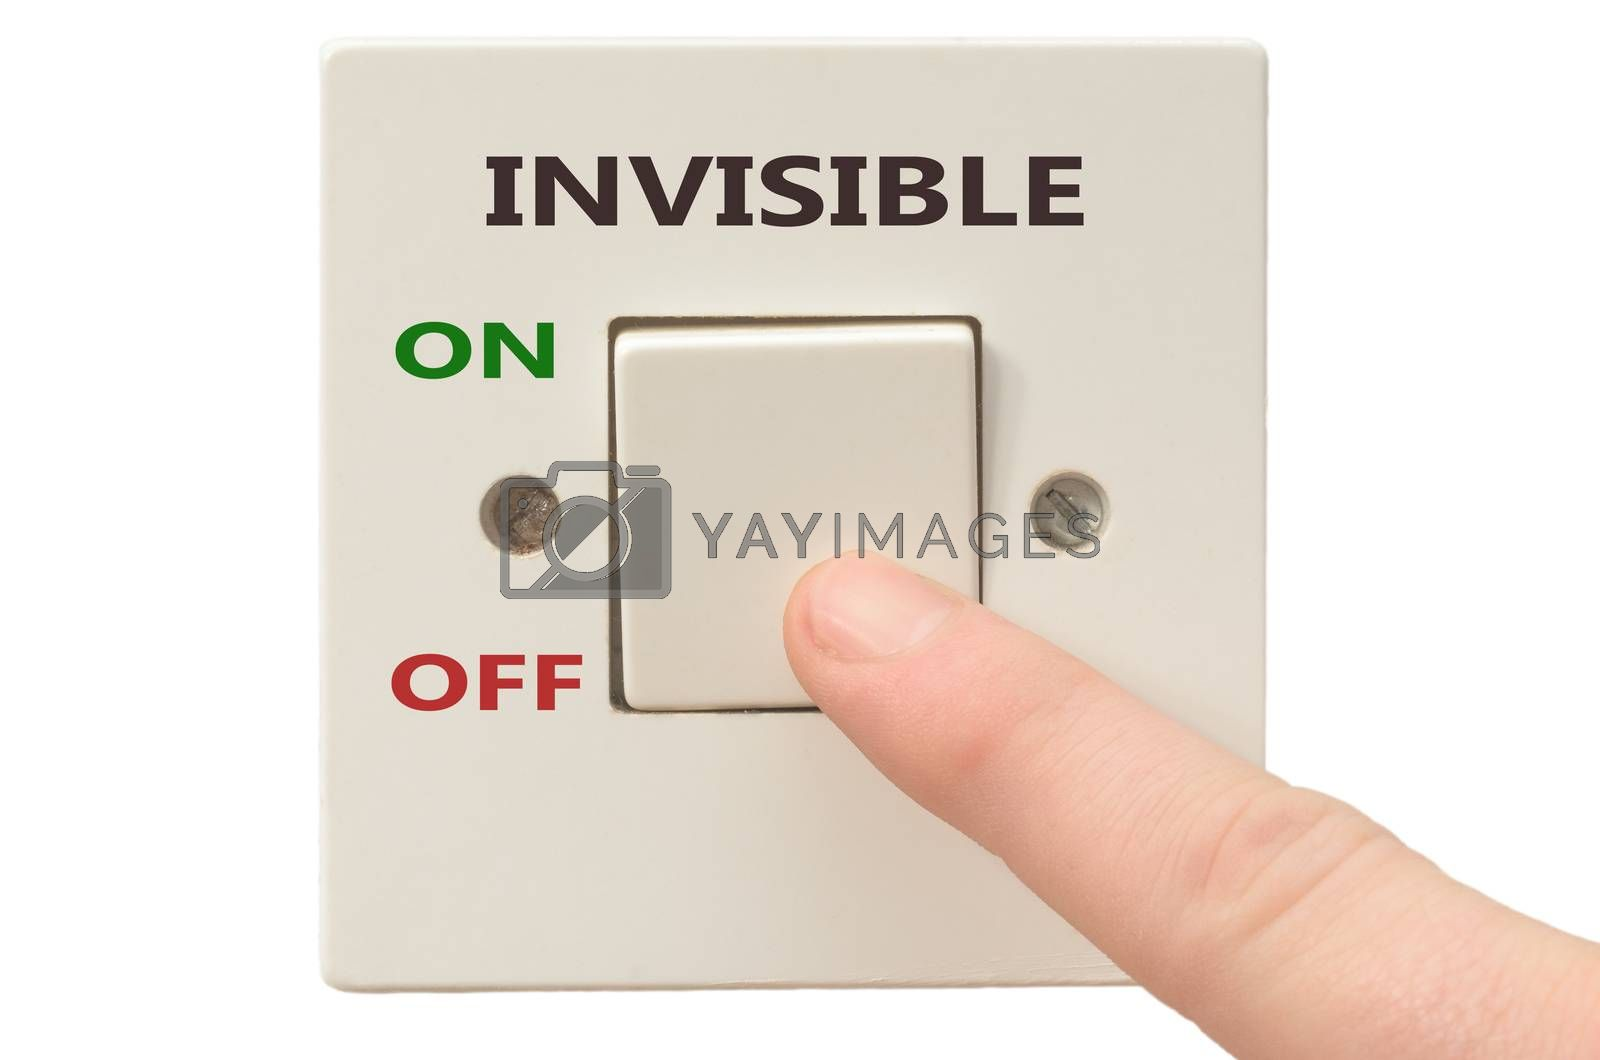 Turning off Invisible with finger on electrical switch